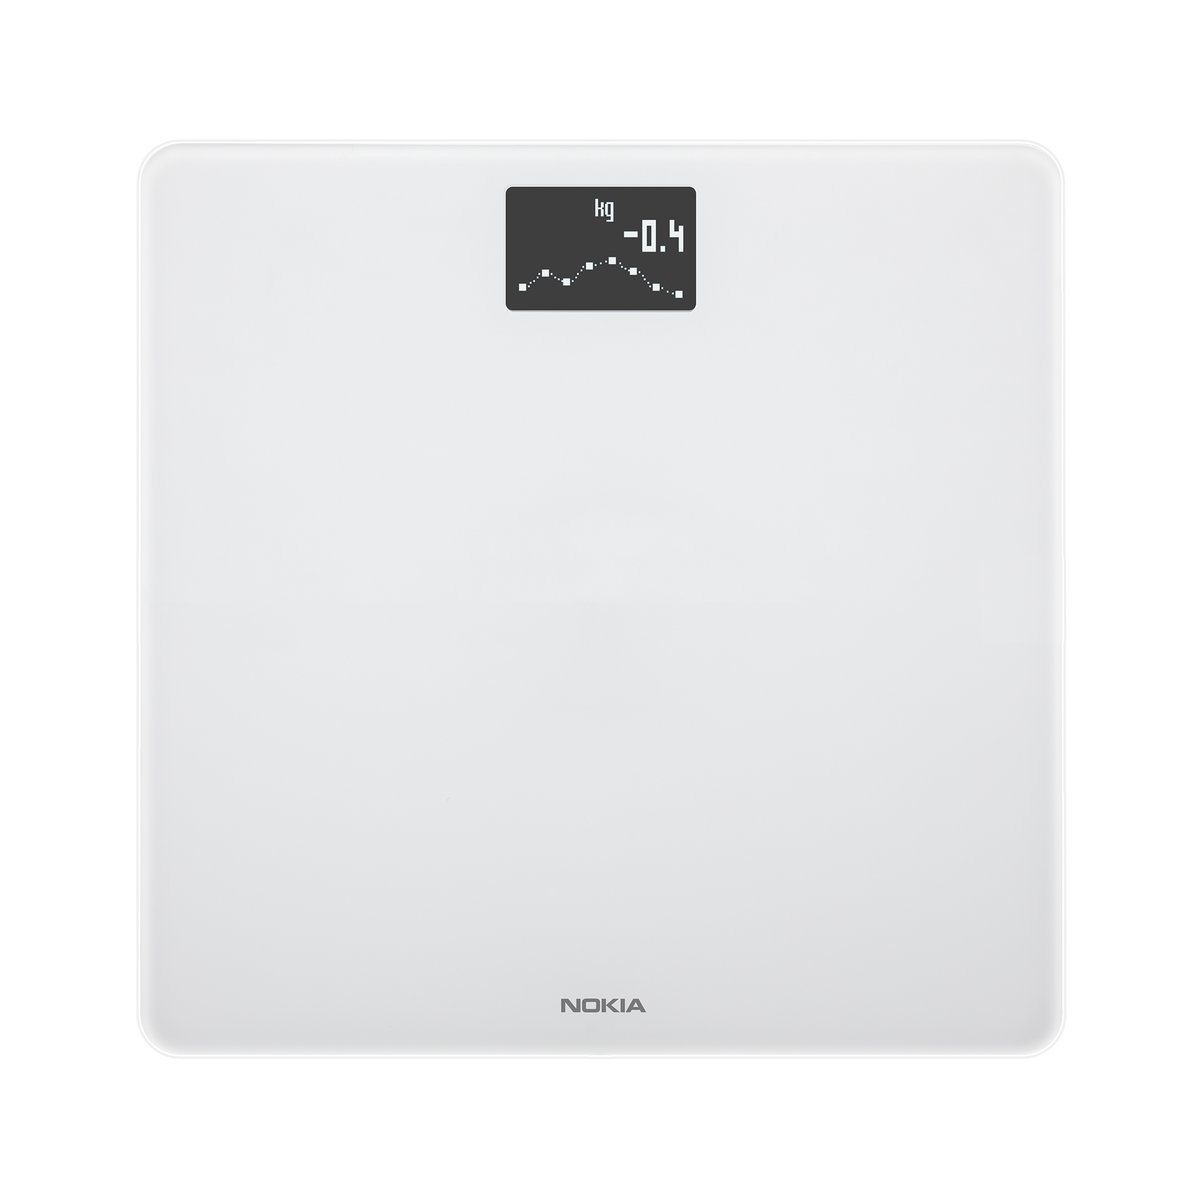 Nokia Body BMI Wi-fi scale - White